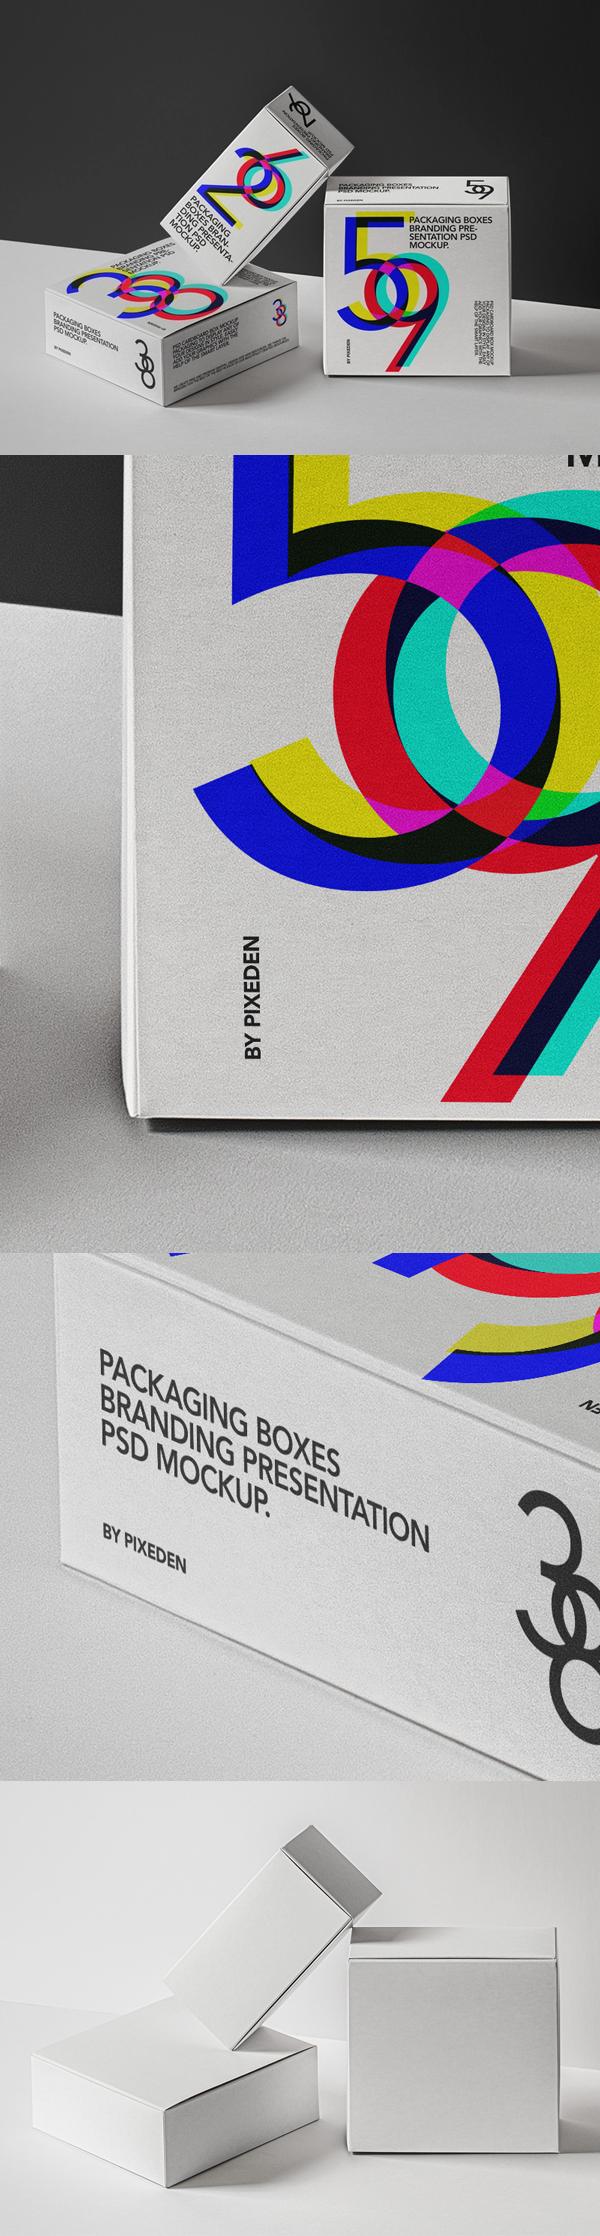 Free Psd Packaging Box Mockup Set